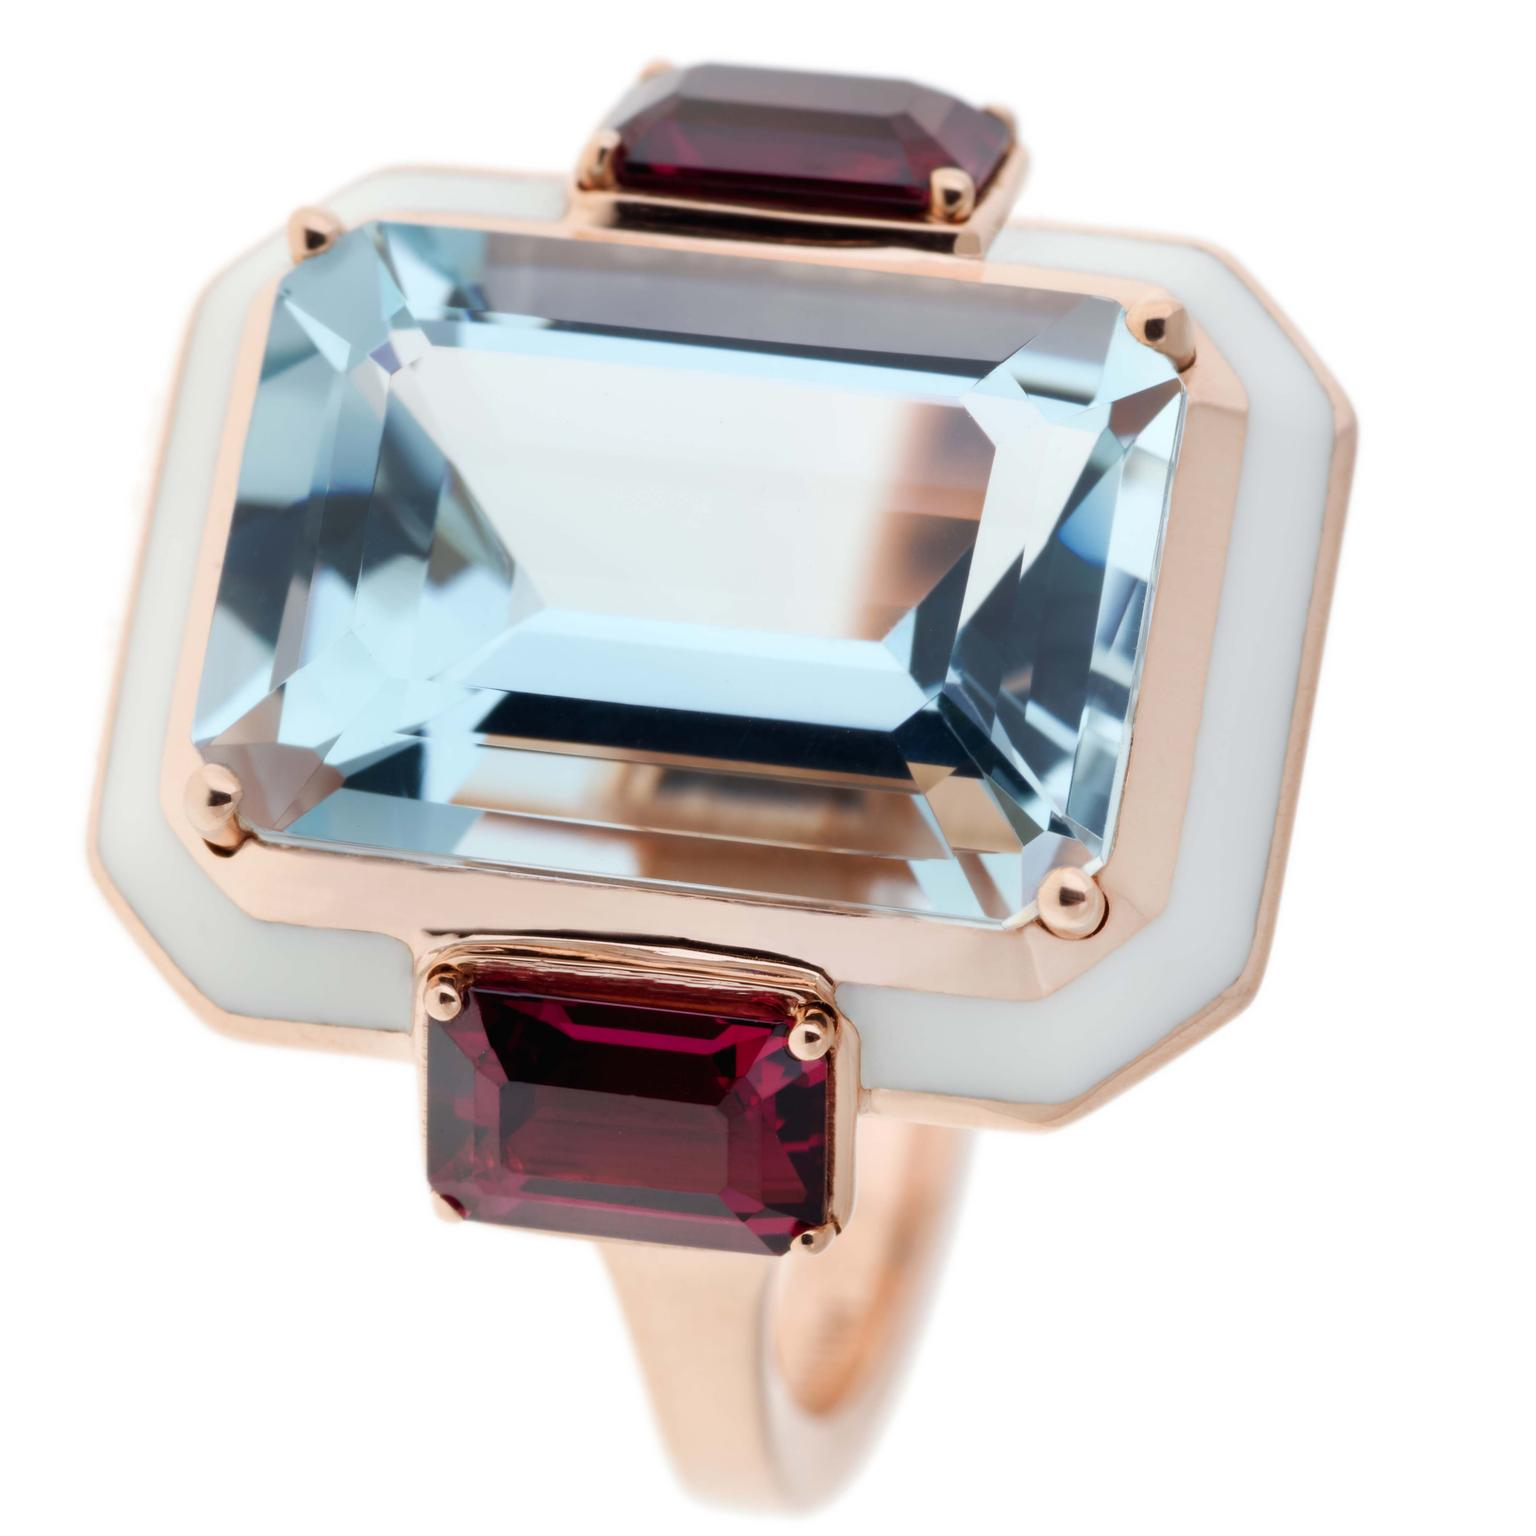 317a67525 The significance and meaning of right-hand rings | The Jewellery Editor